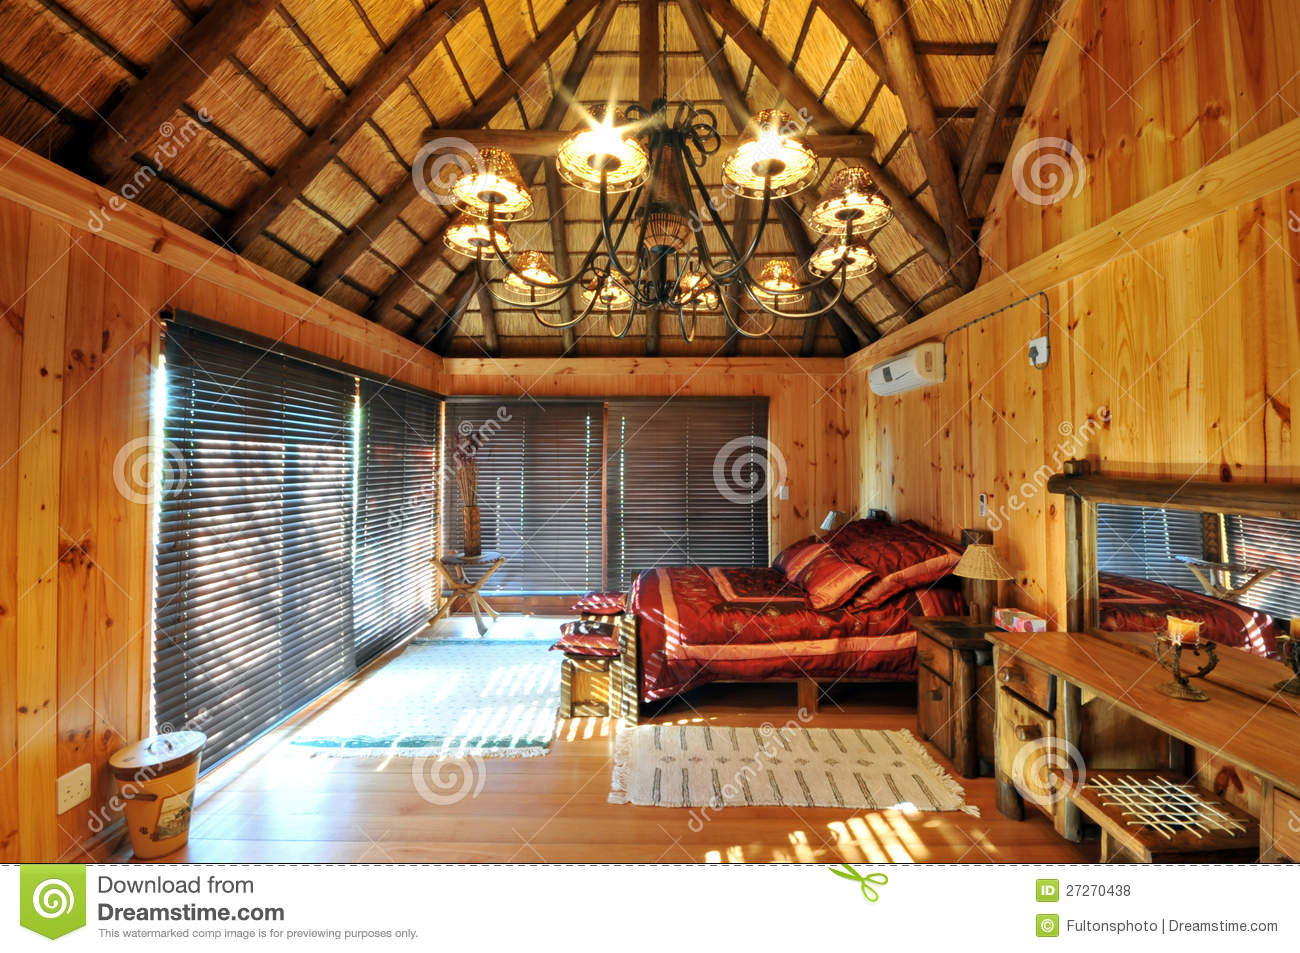 Luxury log cabin accommodation royalty free stock photos for Exclusive accommodation